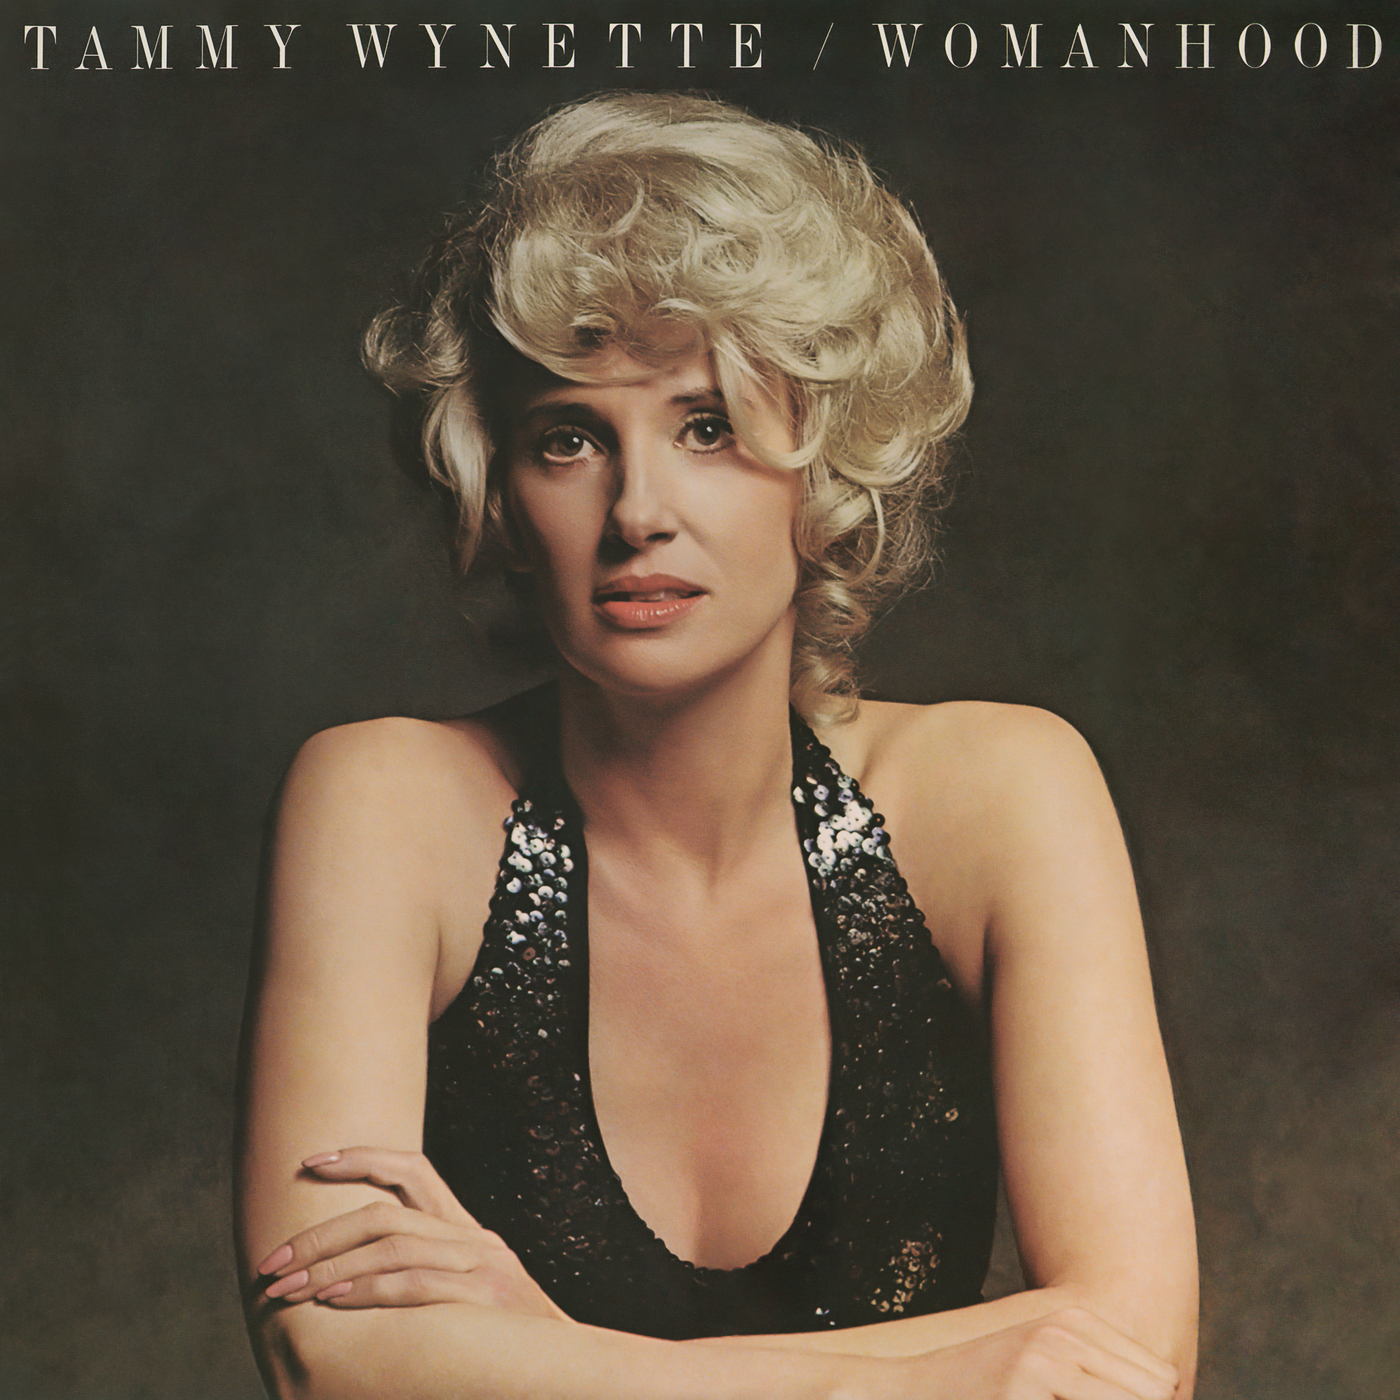 Womanhood - Tammy Wynette